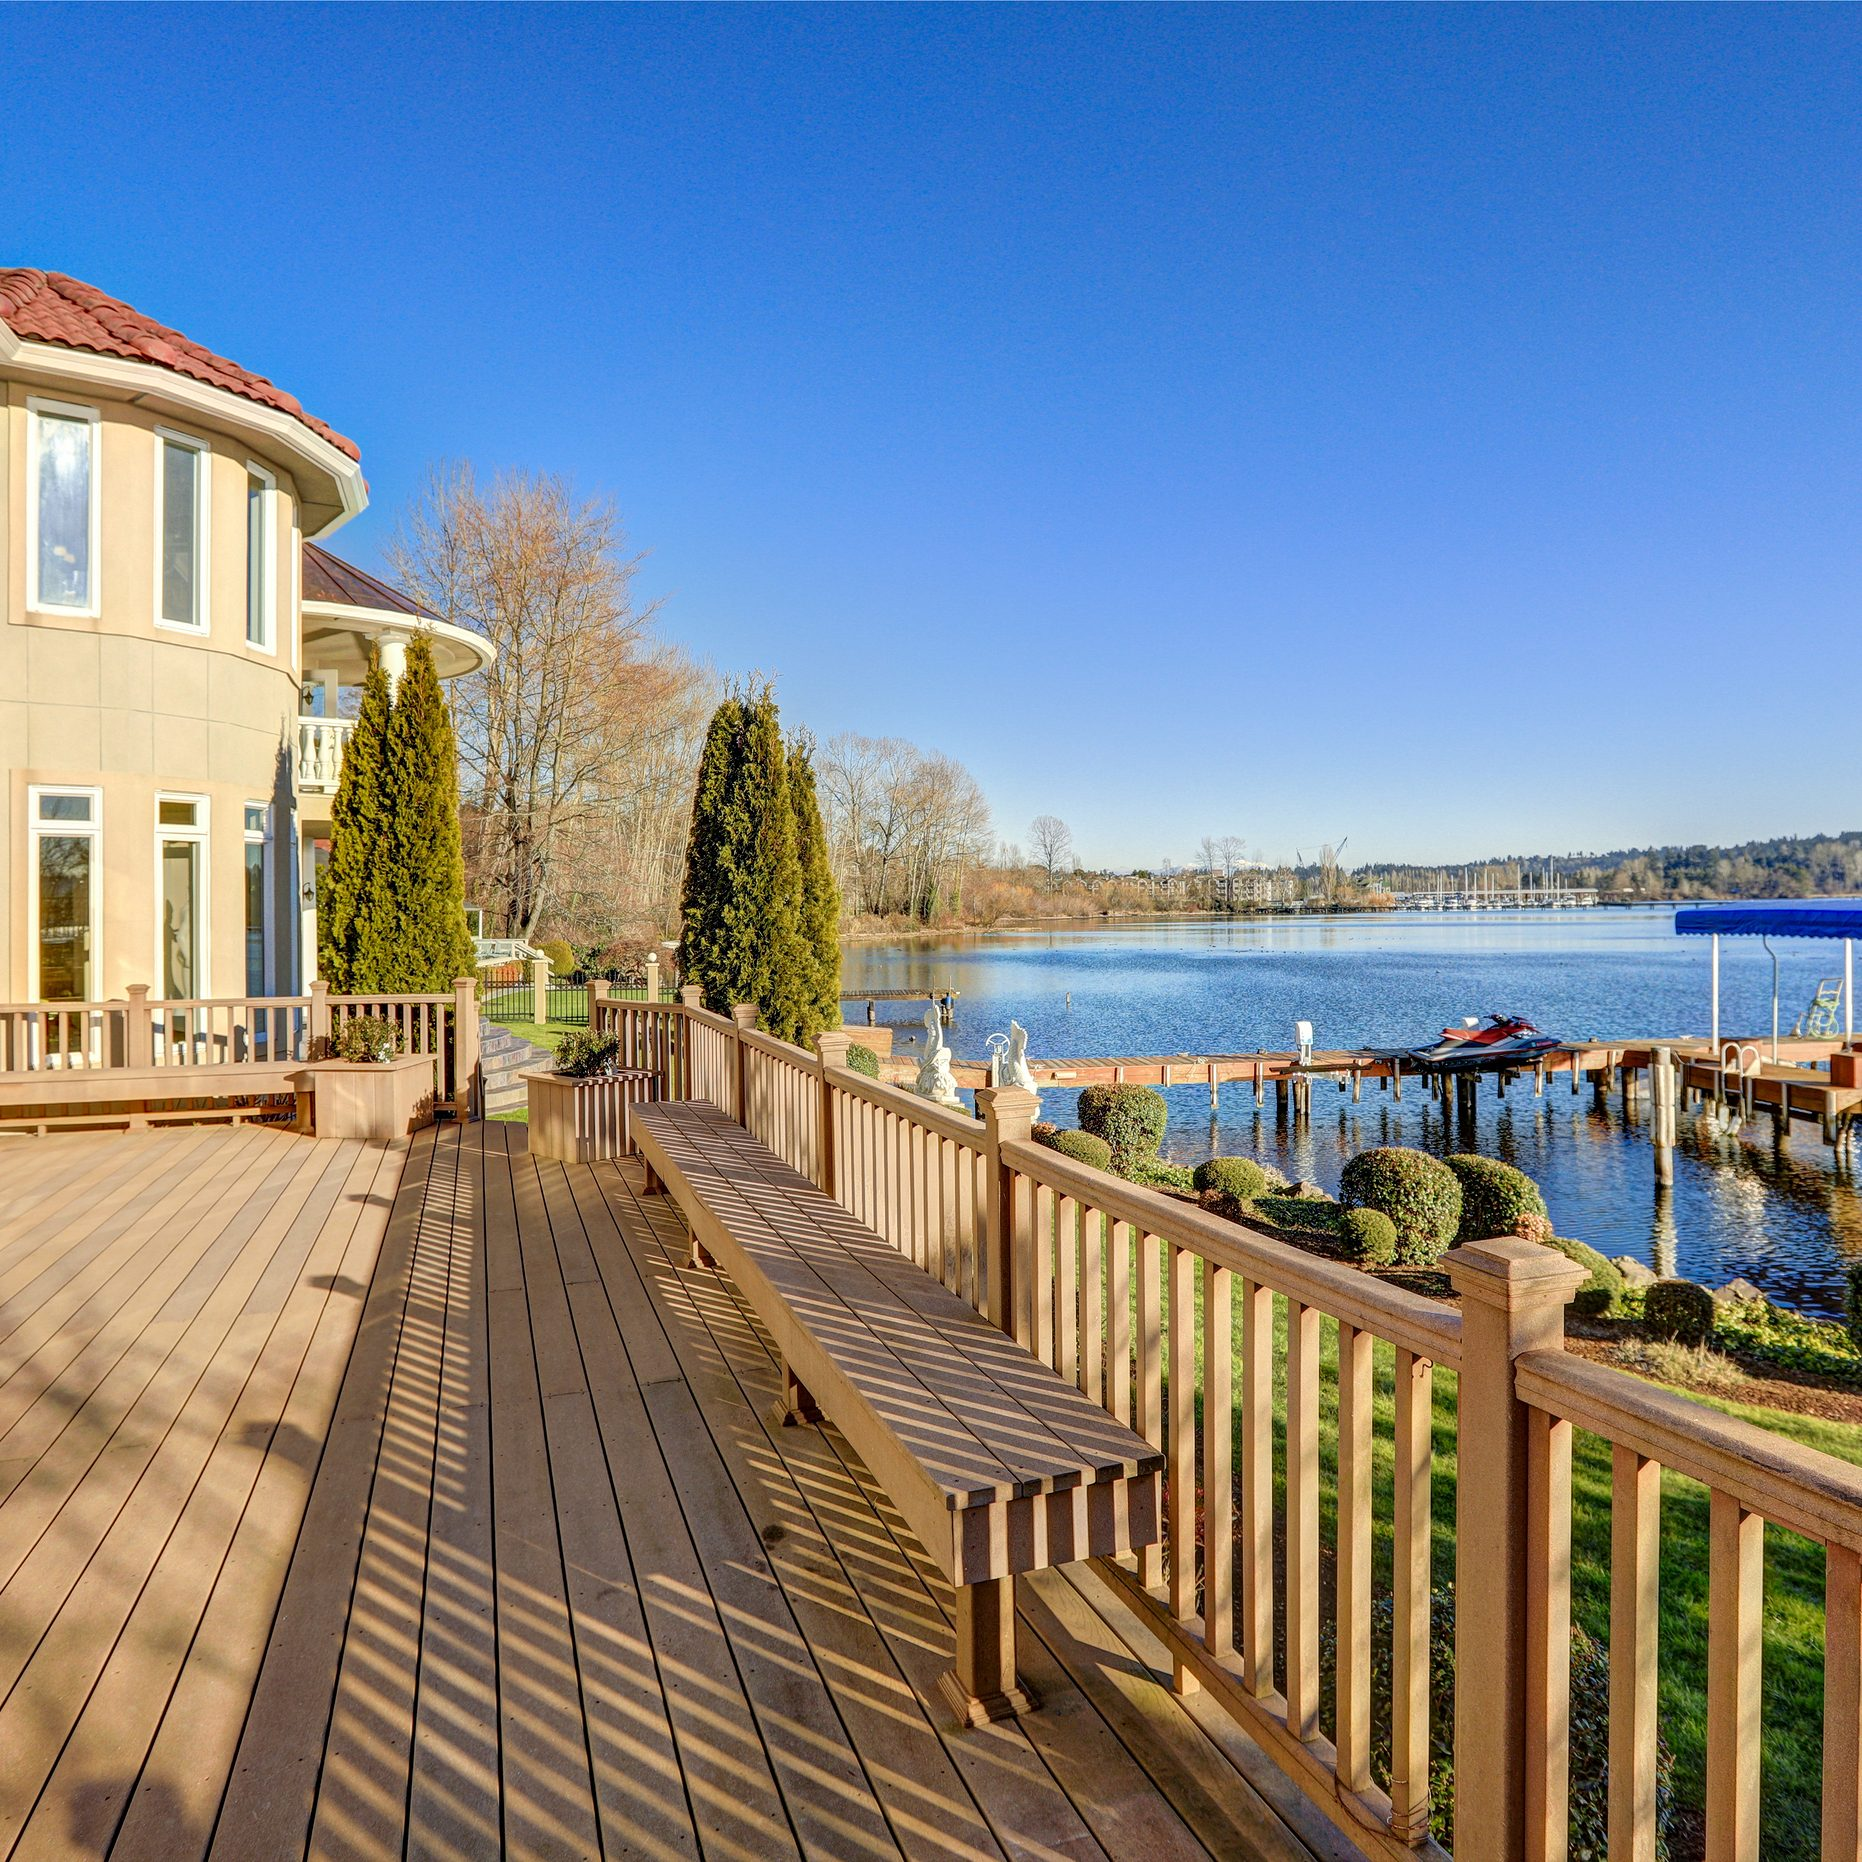 Sunny spacious walkout deck of luxurious Mediterranean style waterfront home overlooking picturesque view of Lake Washington. Northwest USA